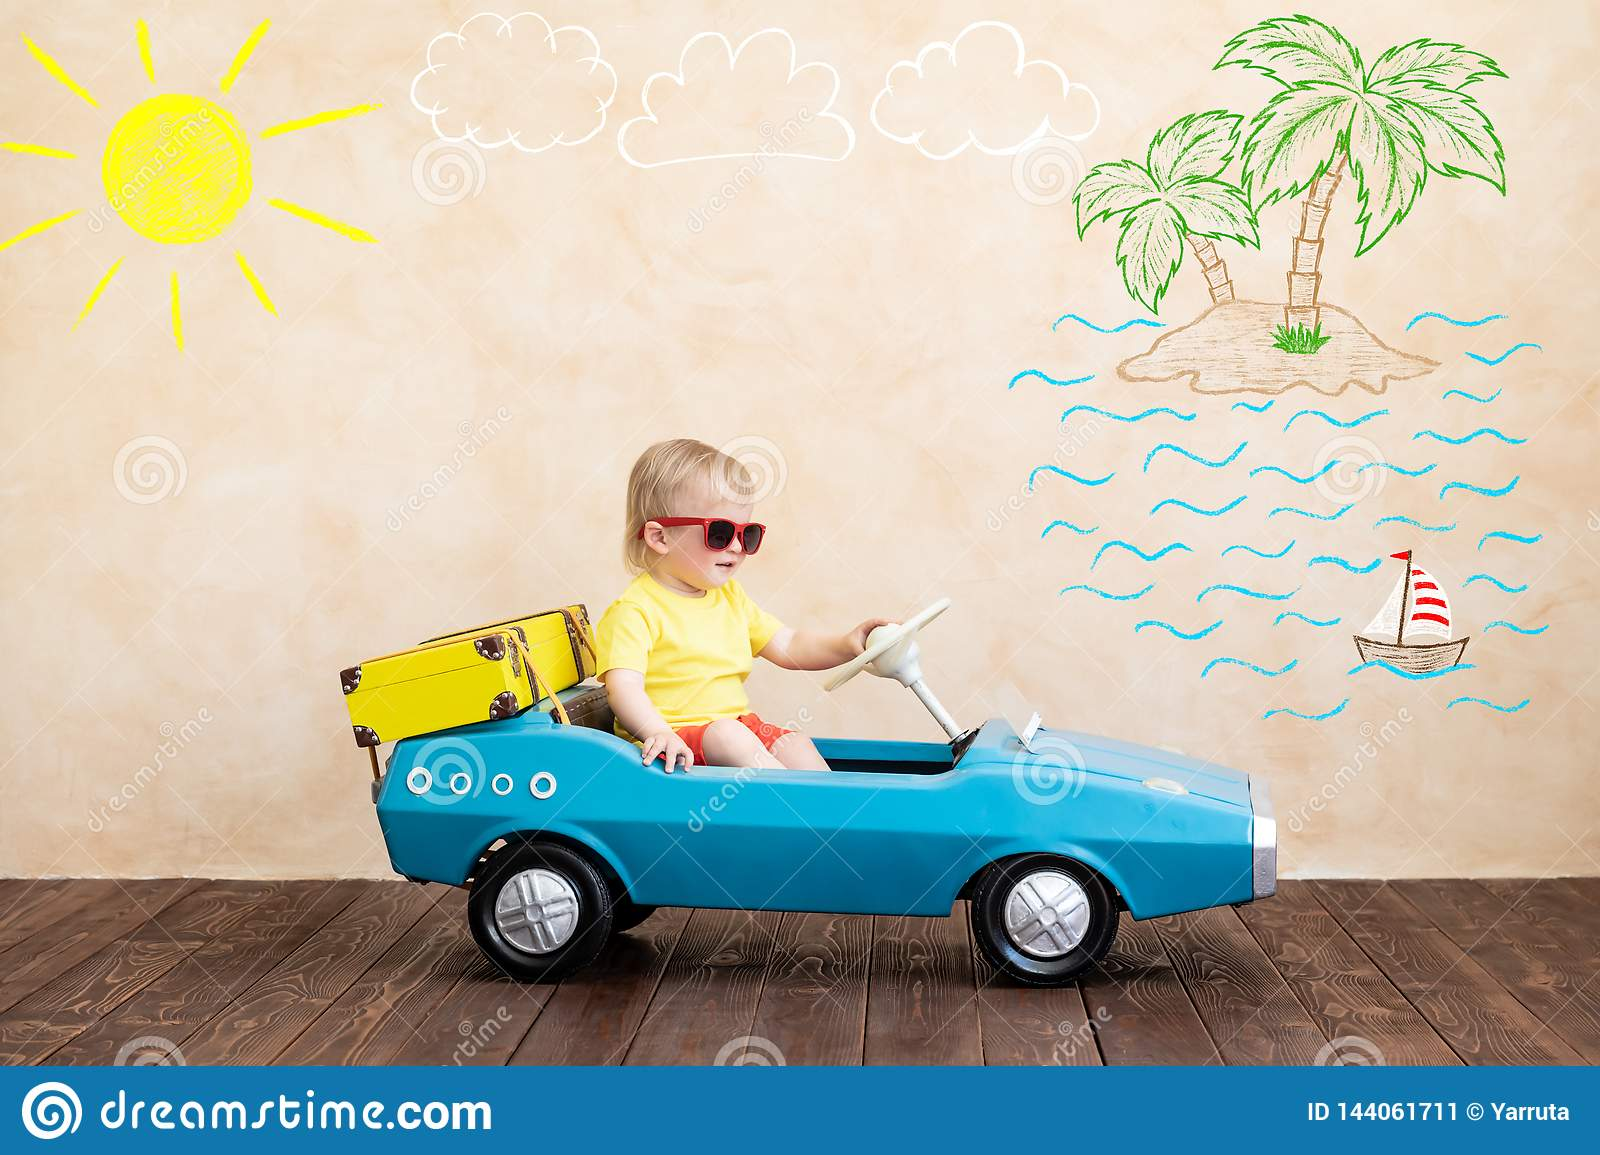 Summer Vacation And Travel Concept Stock Image Image Of Leisure Play 144061711